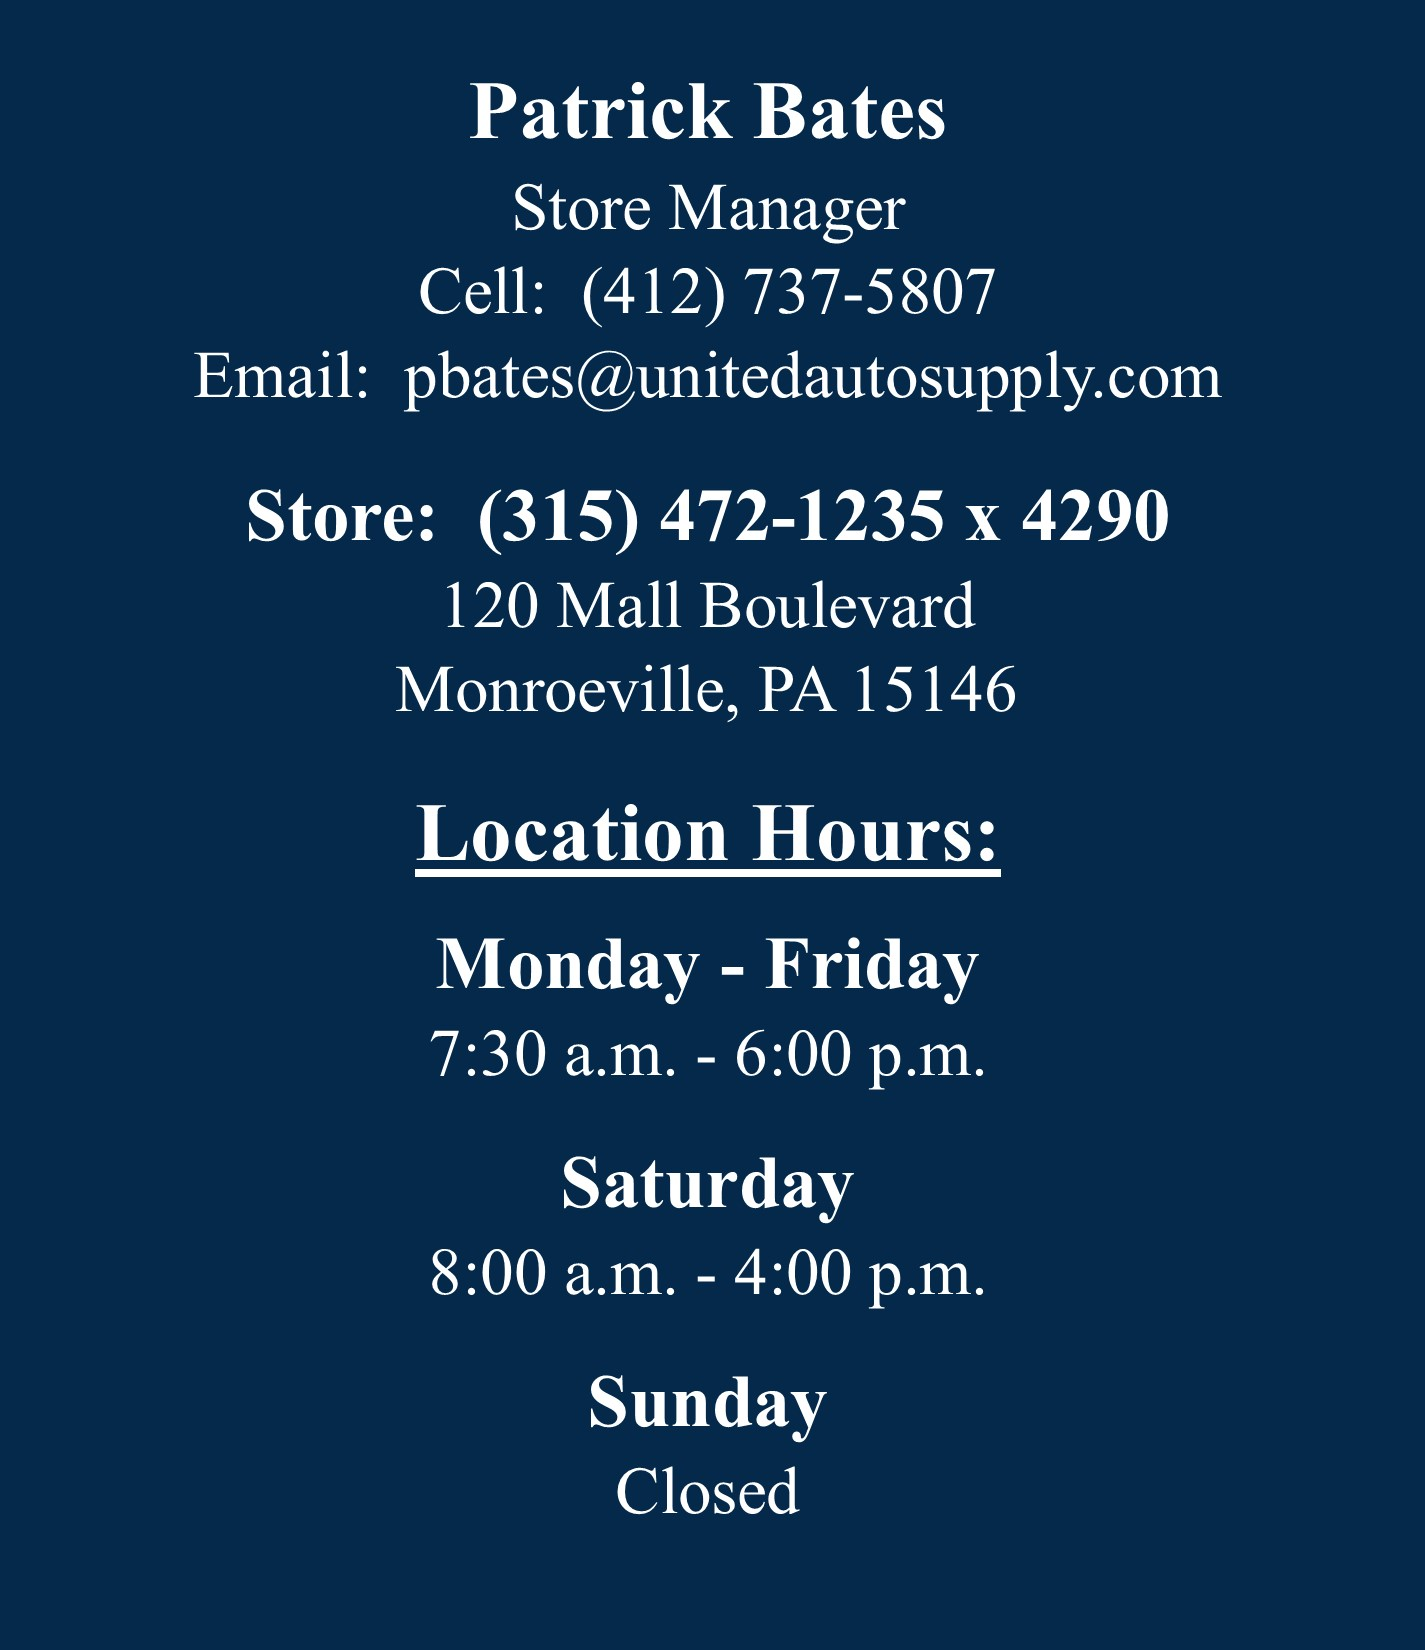 Monroeville - Manager Info